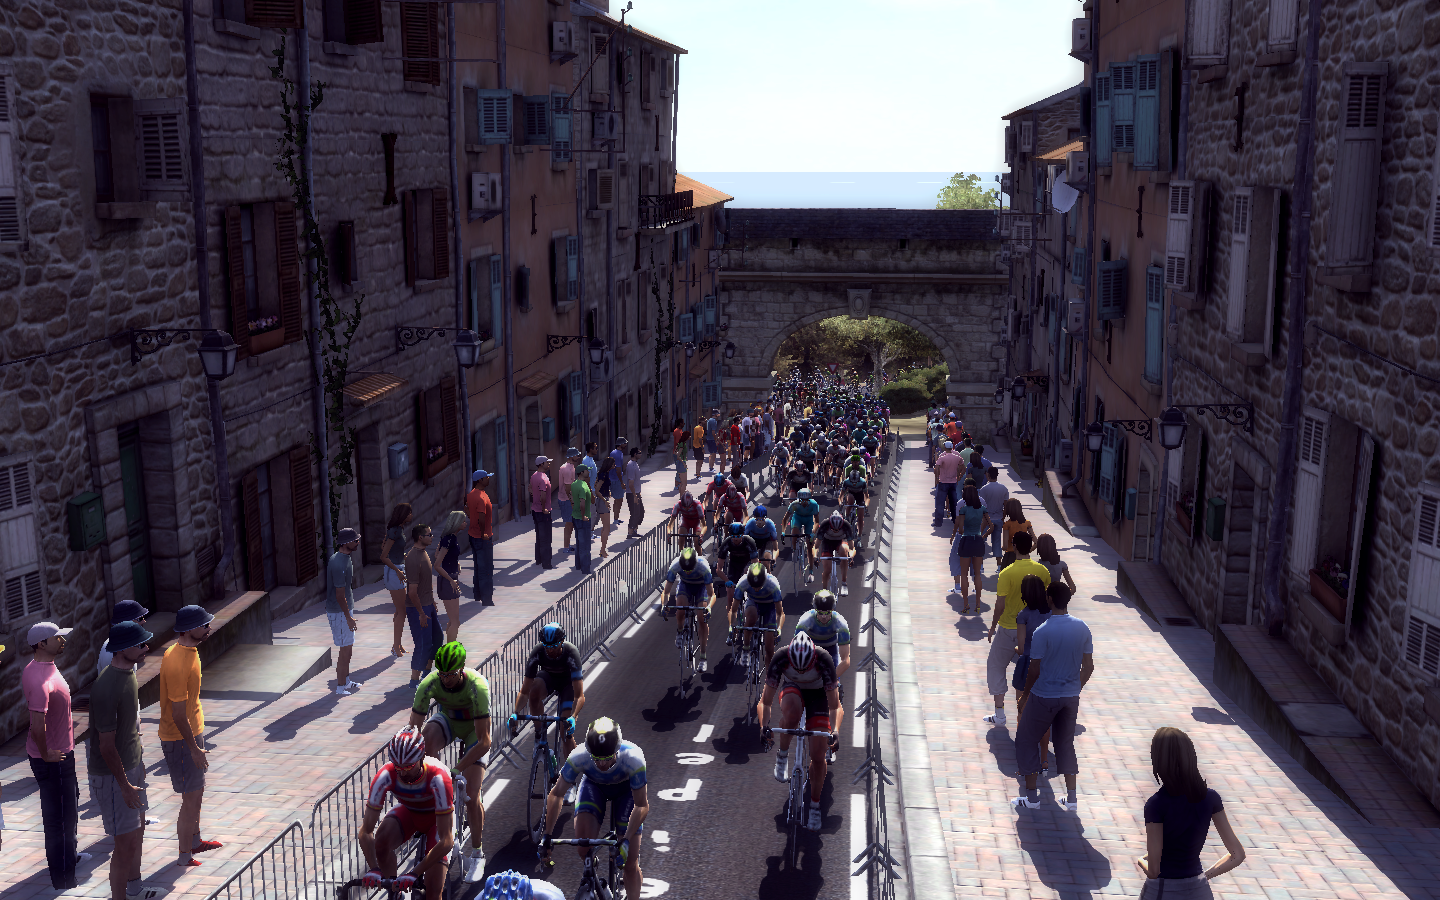 Stages ricardo123 - MSR 2014 (update) + 2 more S5xqb9